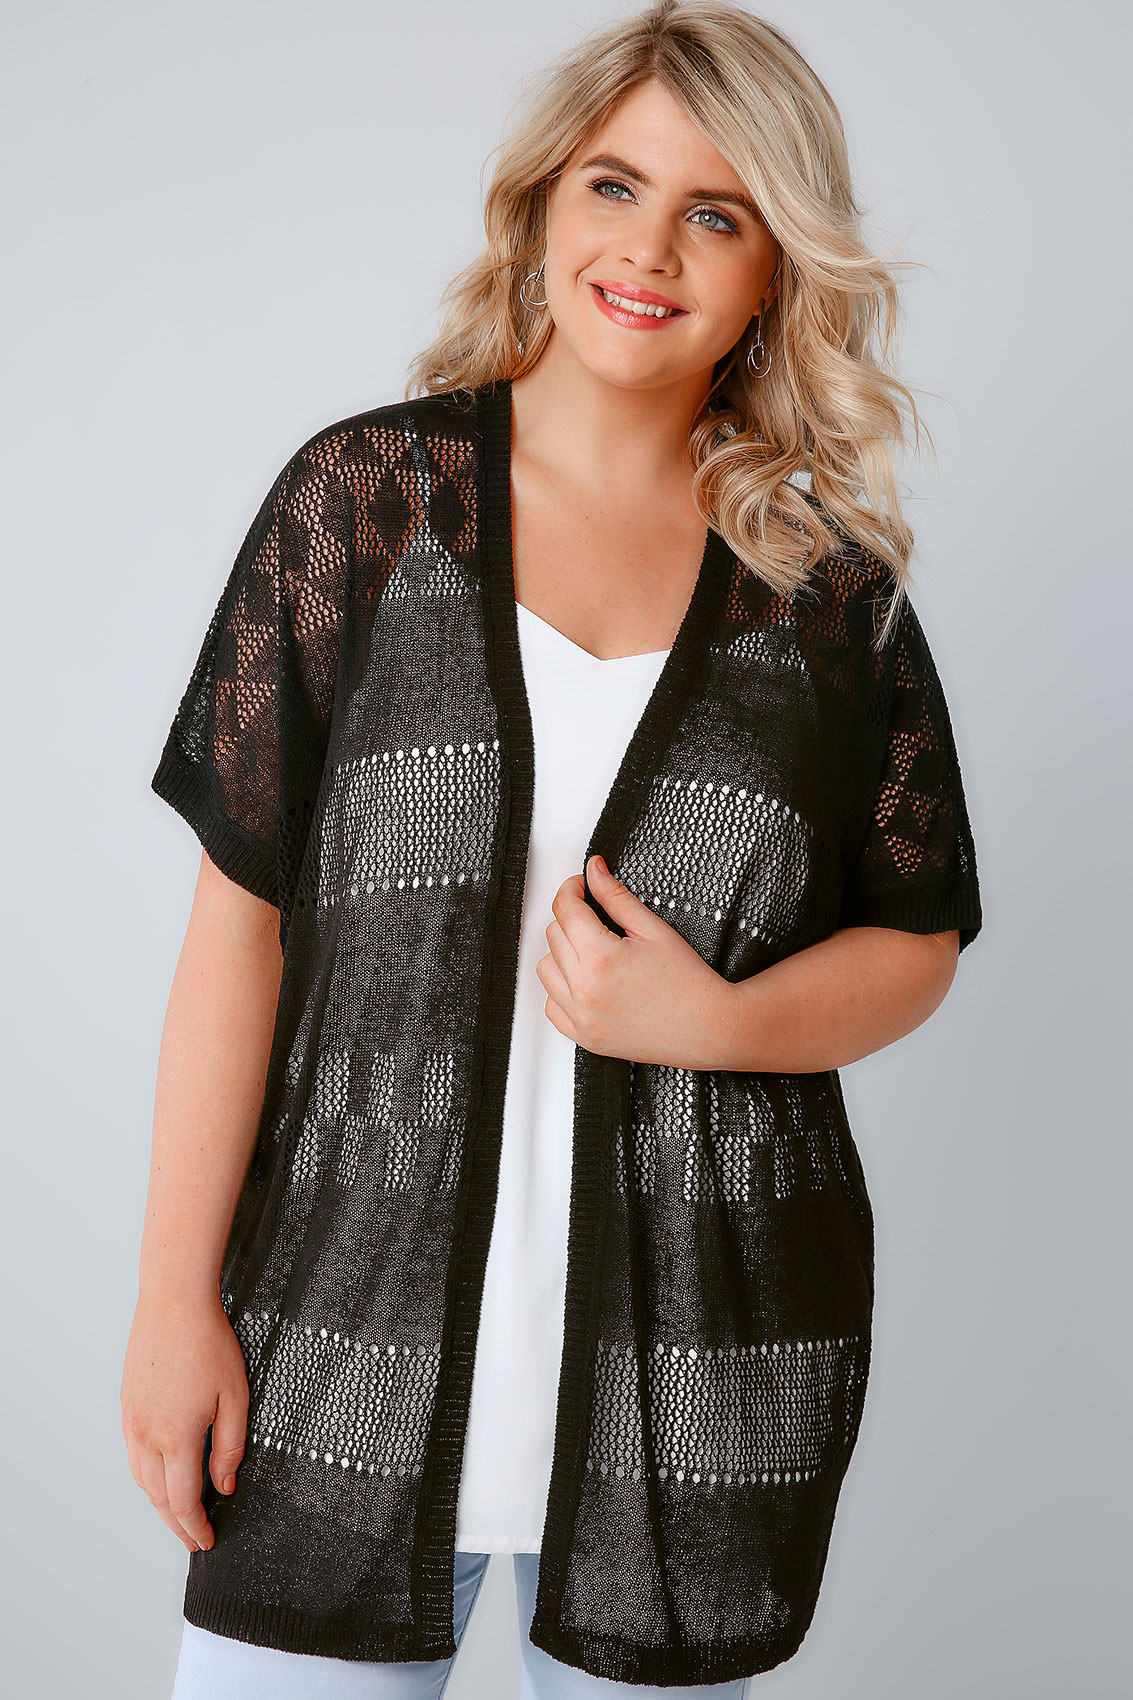 Black Crochet Knit Cardigan With Short Sleeves, Plus size 16 to 36